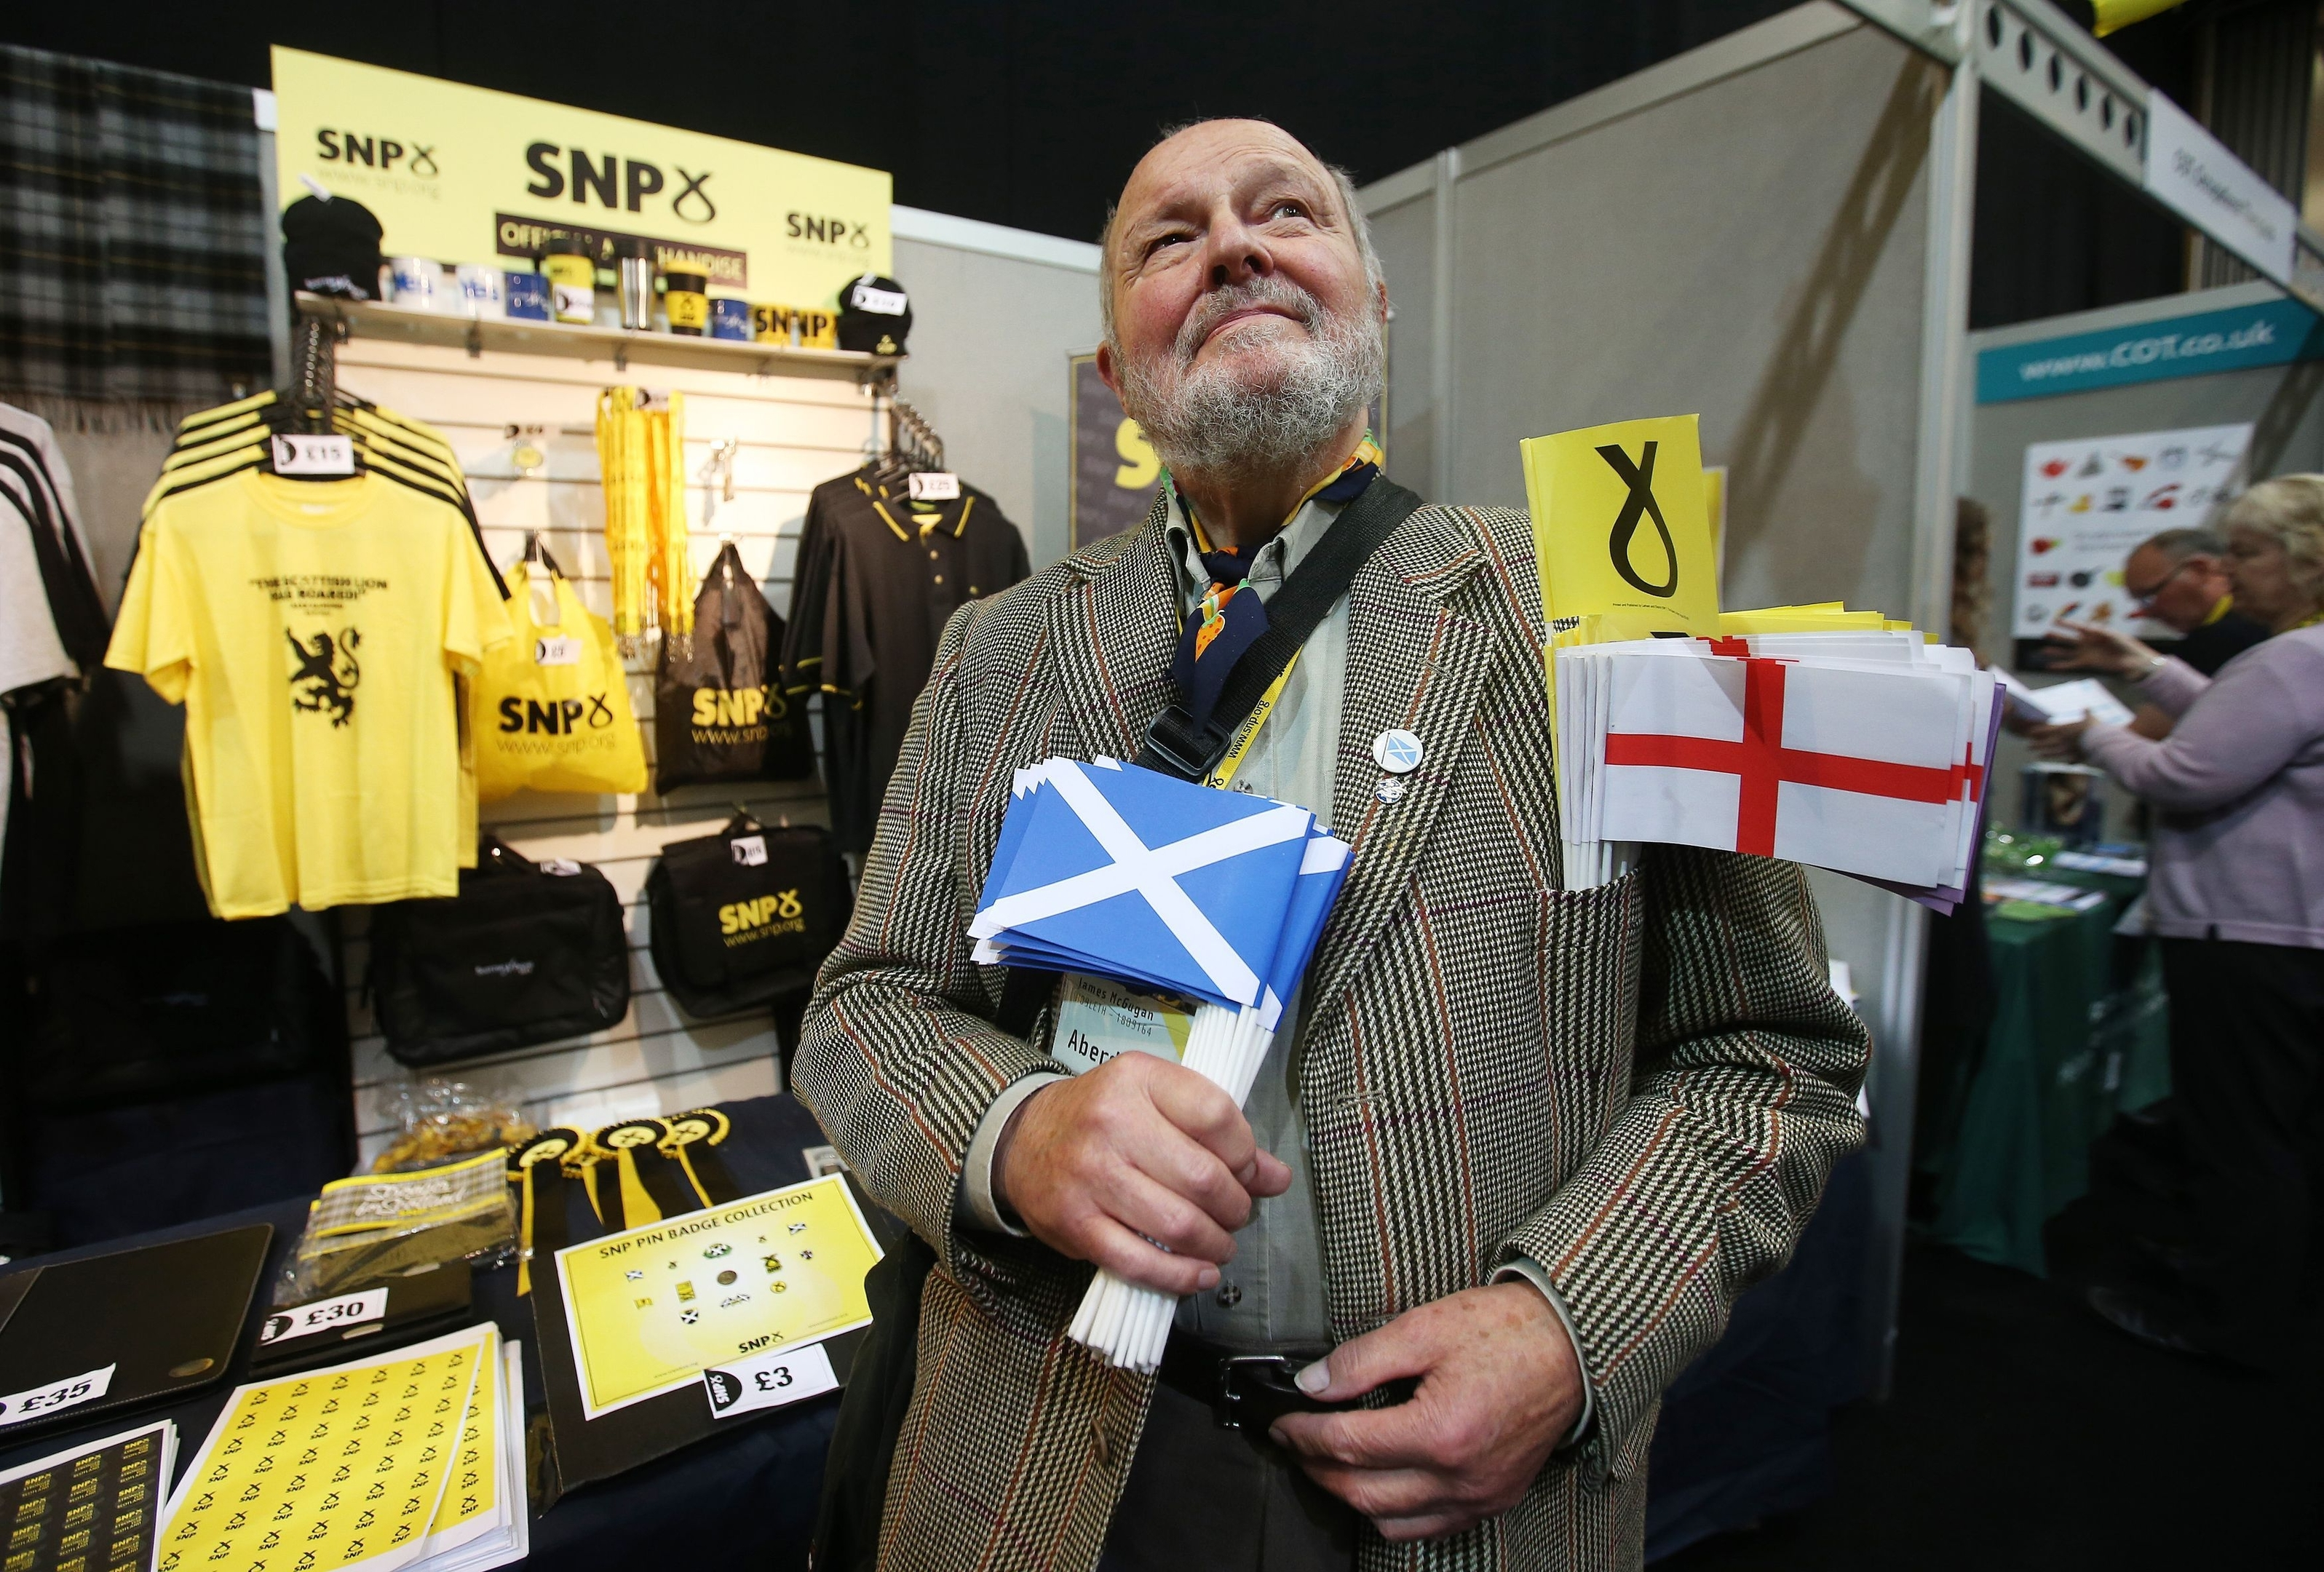 SNP supporter James McGugan at the SNP conference